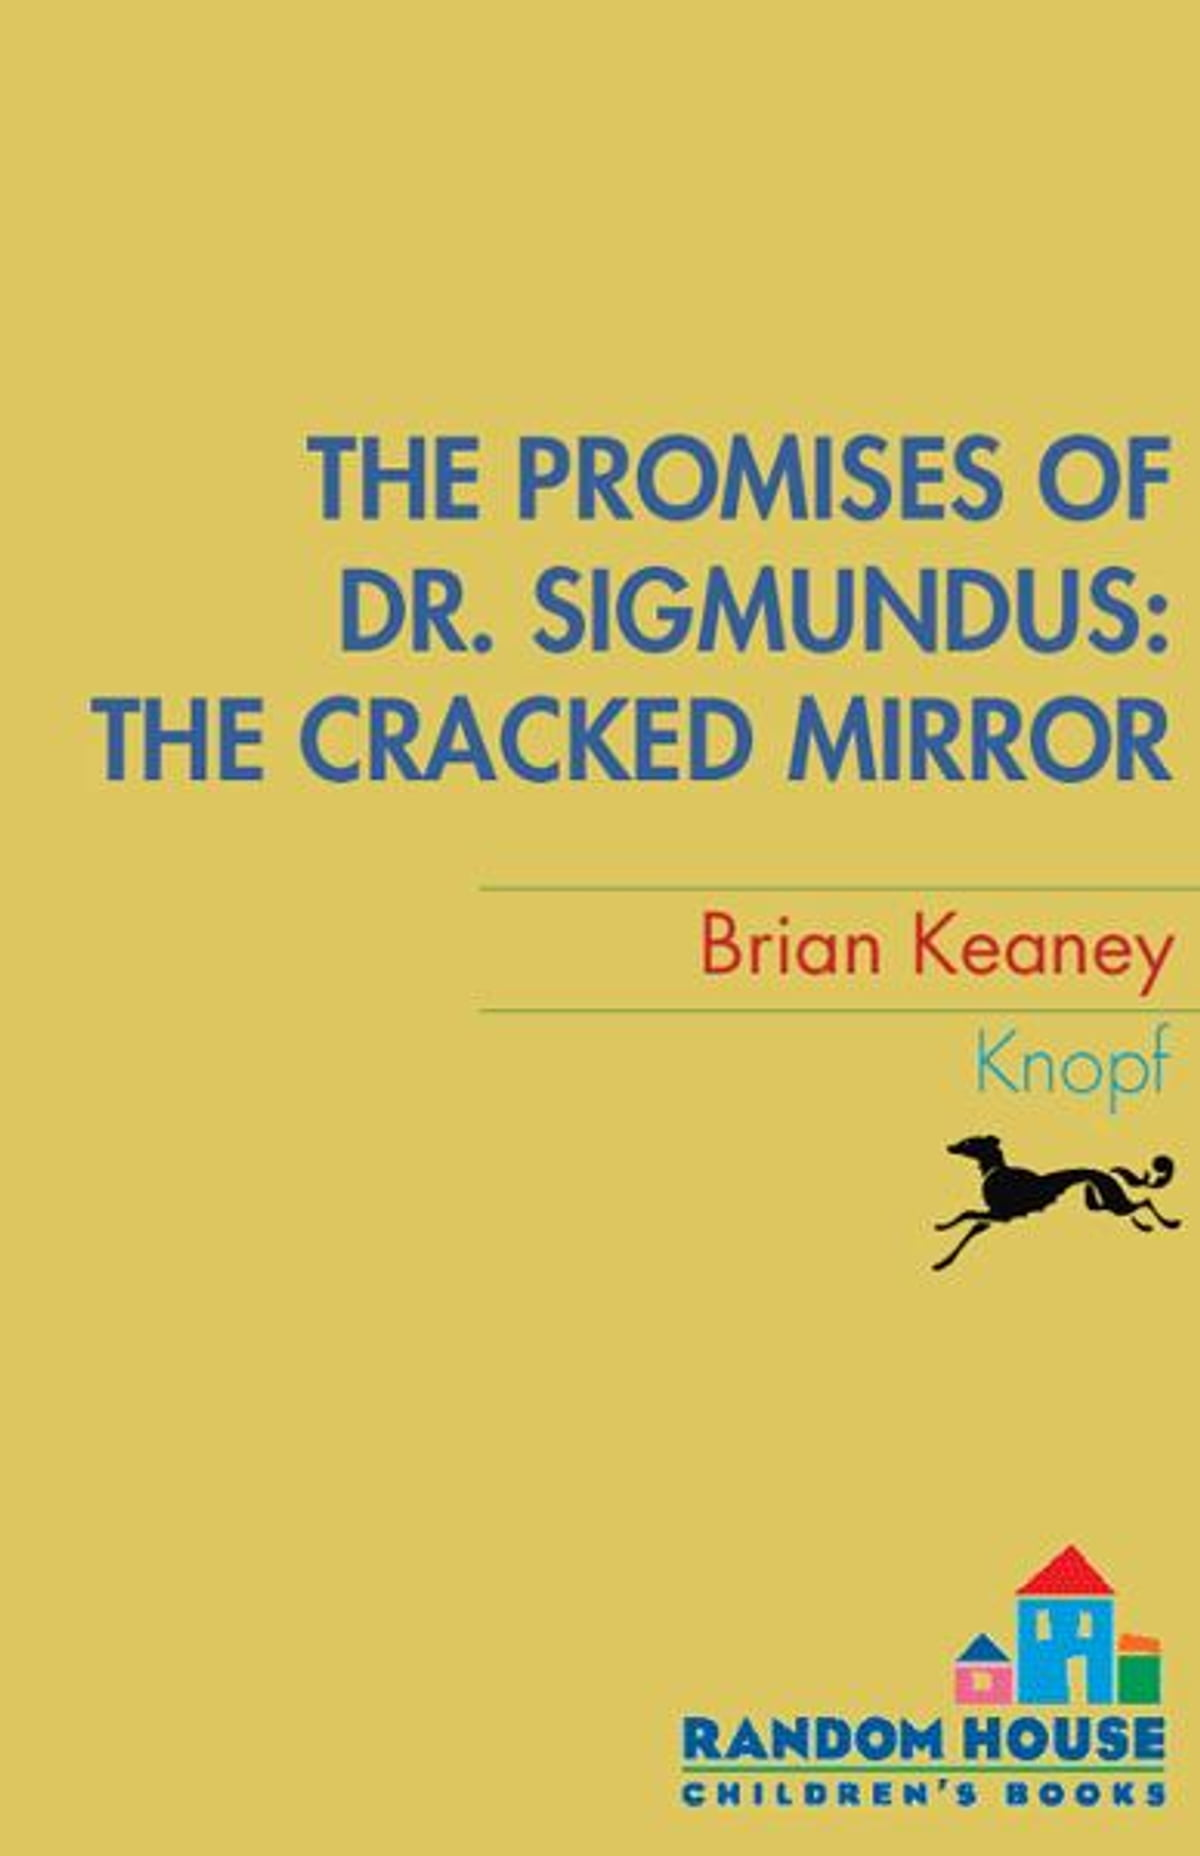 Ebook The Cracked Mirror The Promises Of Dr Sigmundus 2 By Brian Keaney